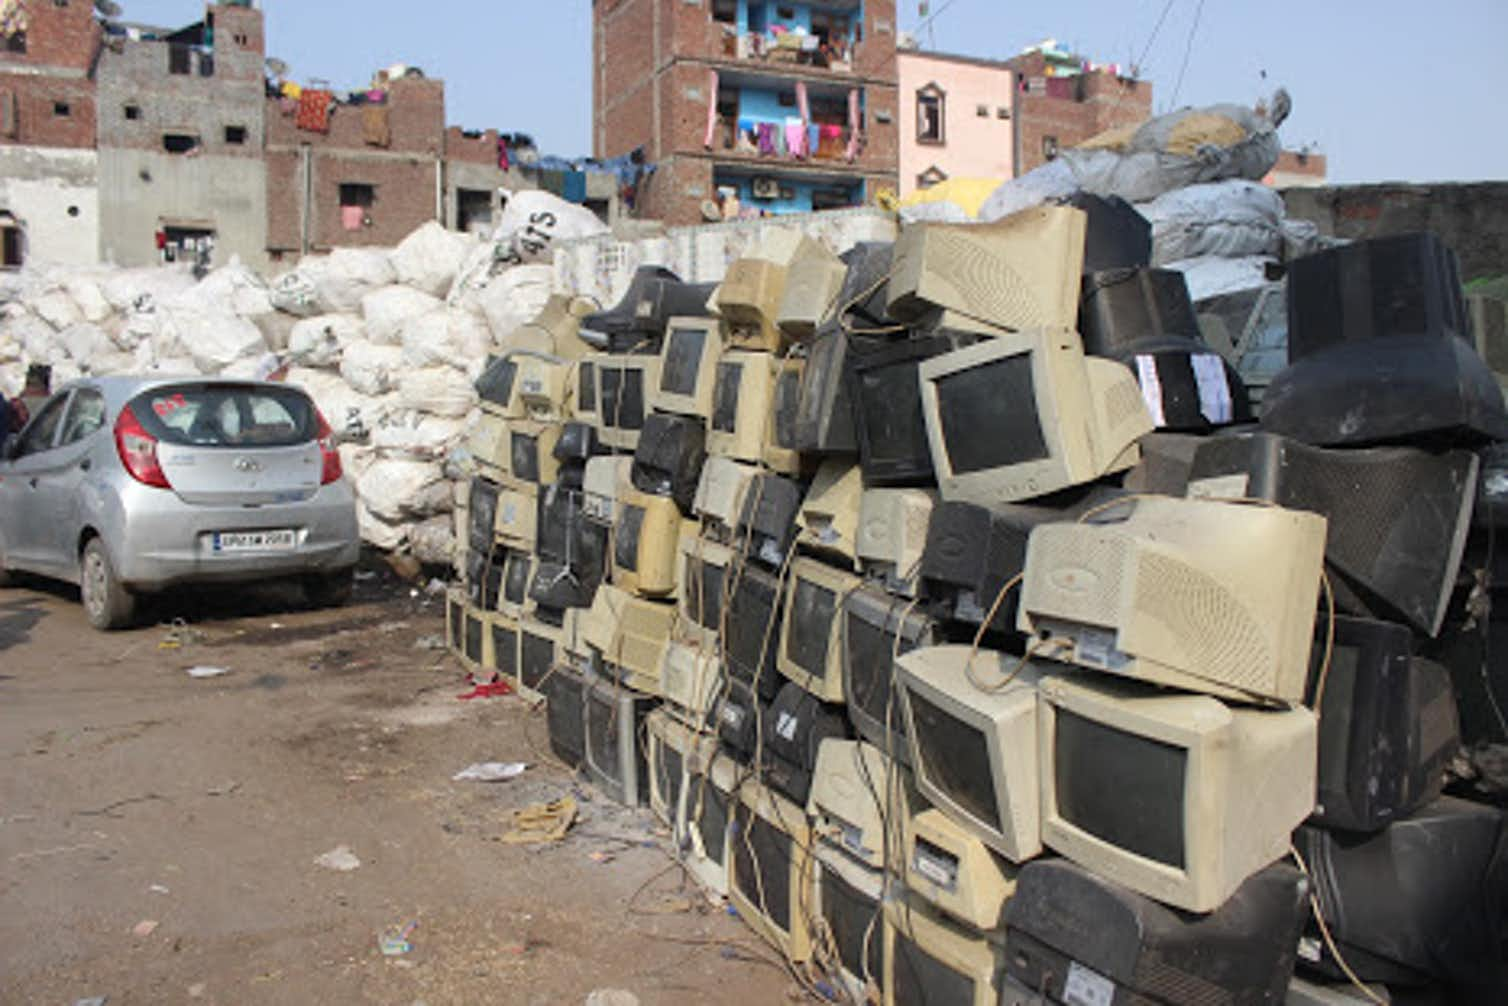 Obsolete computer electronics equipment lie stacked along the roads in Seelampur. Photo credit: Alankrita Soni, Author provided